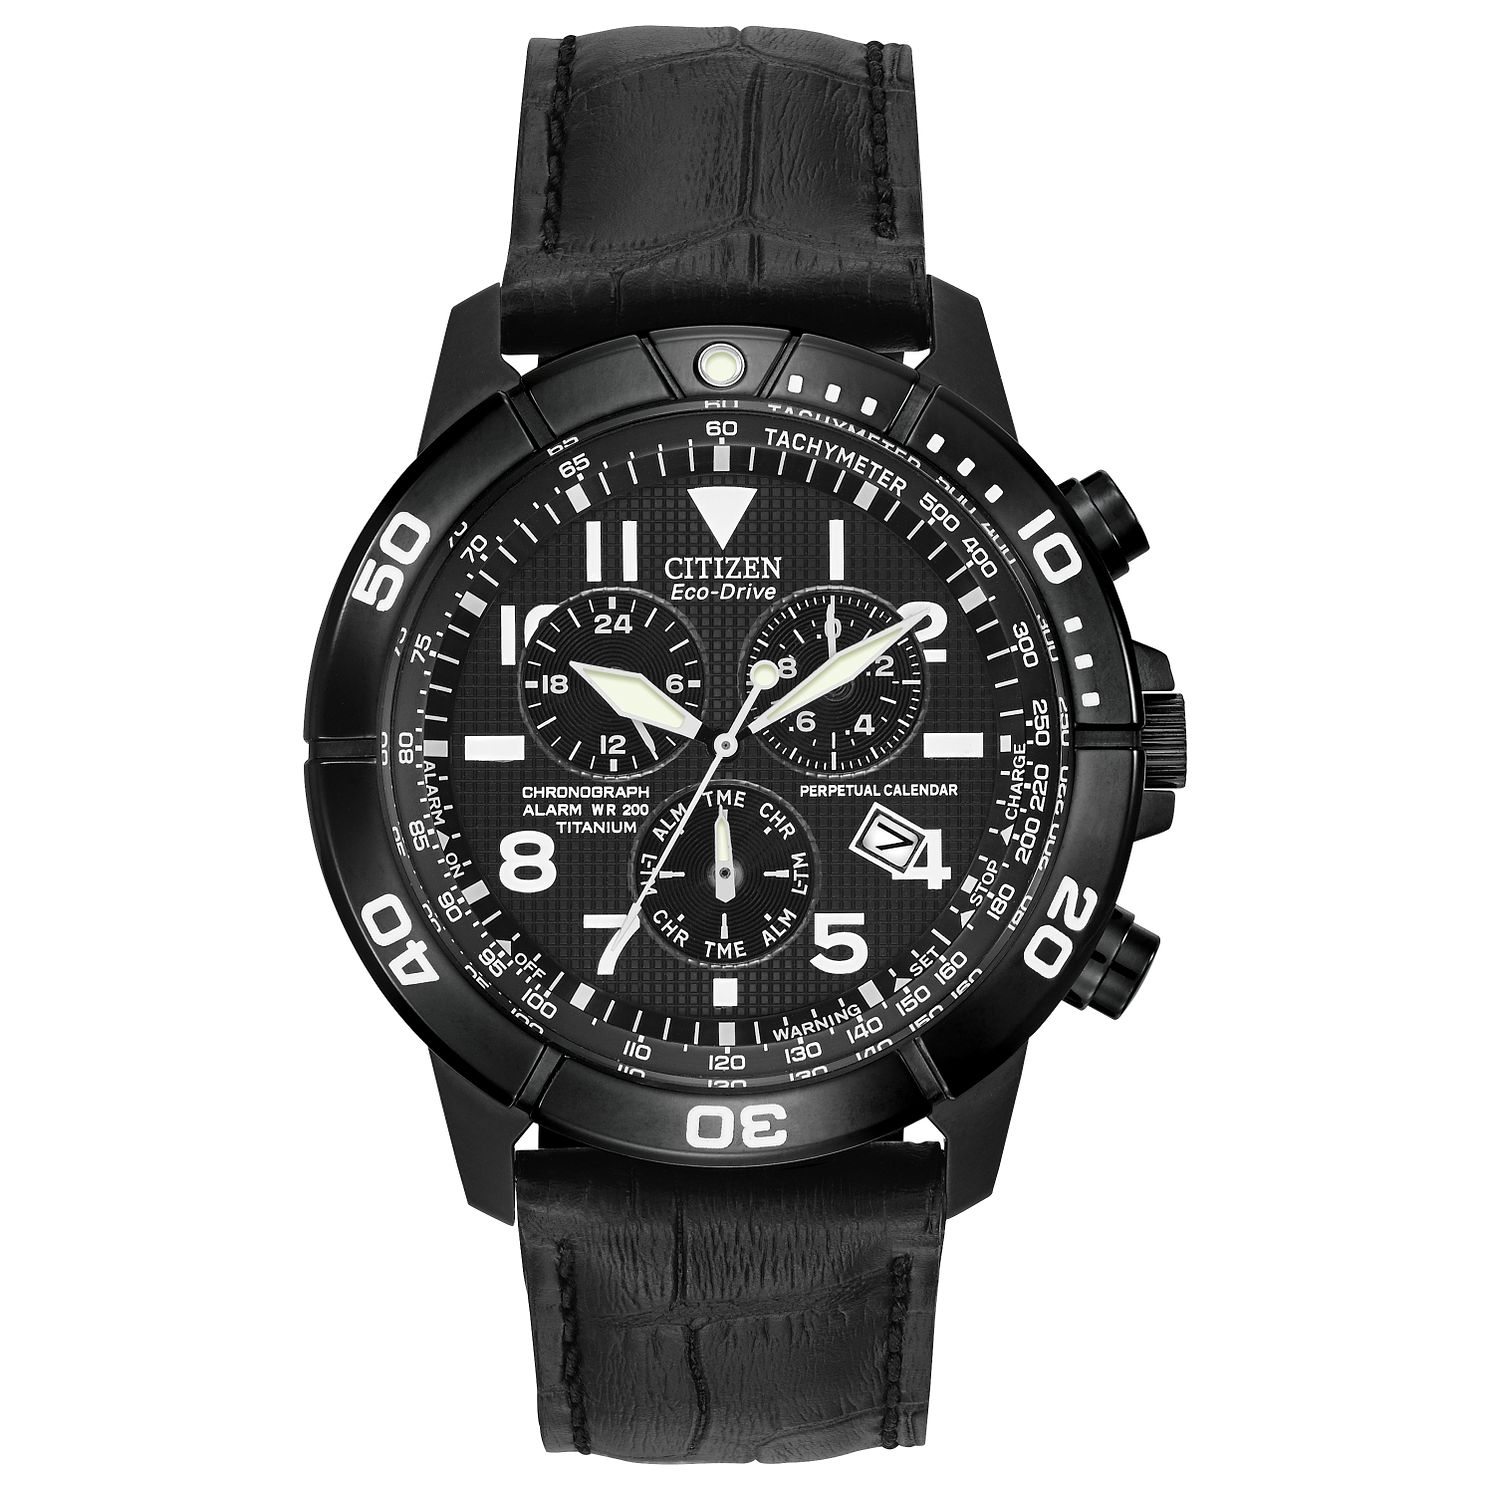 watches chronograph larsen lars tachymeter watch com mens gents watchshop